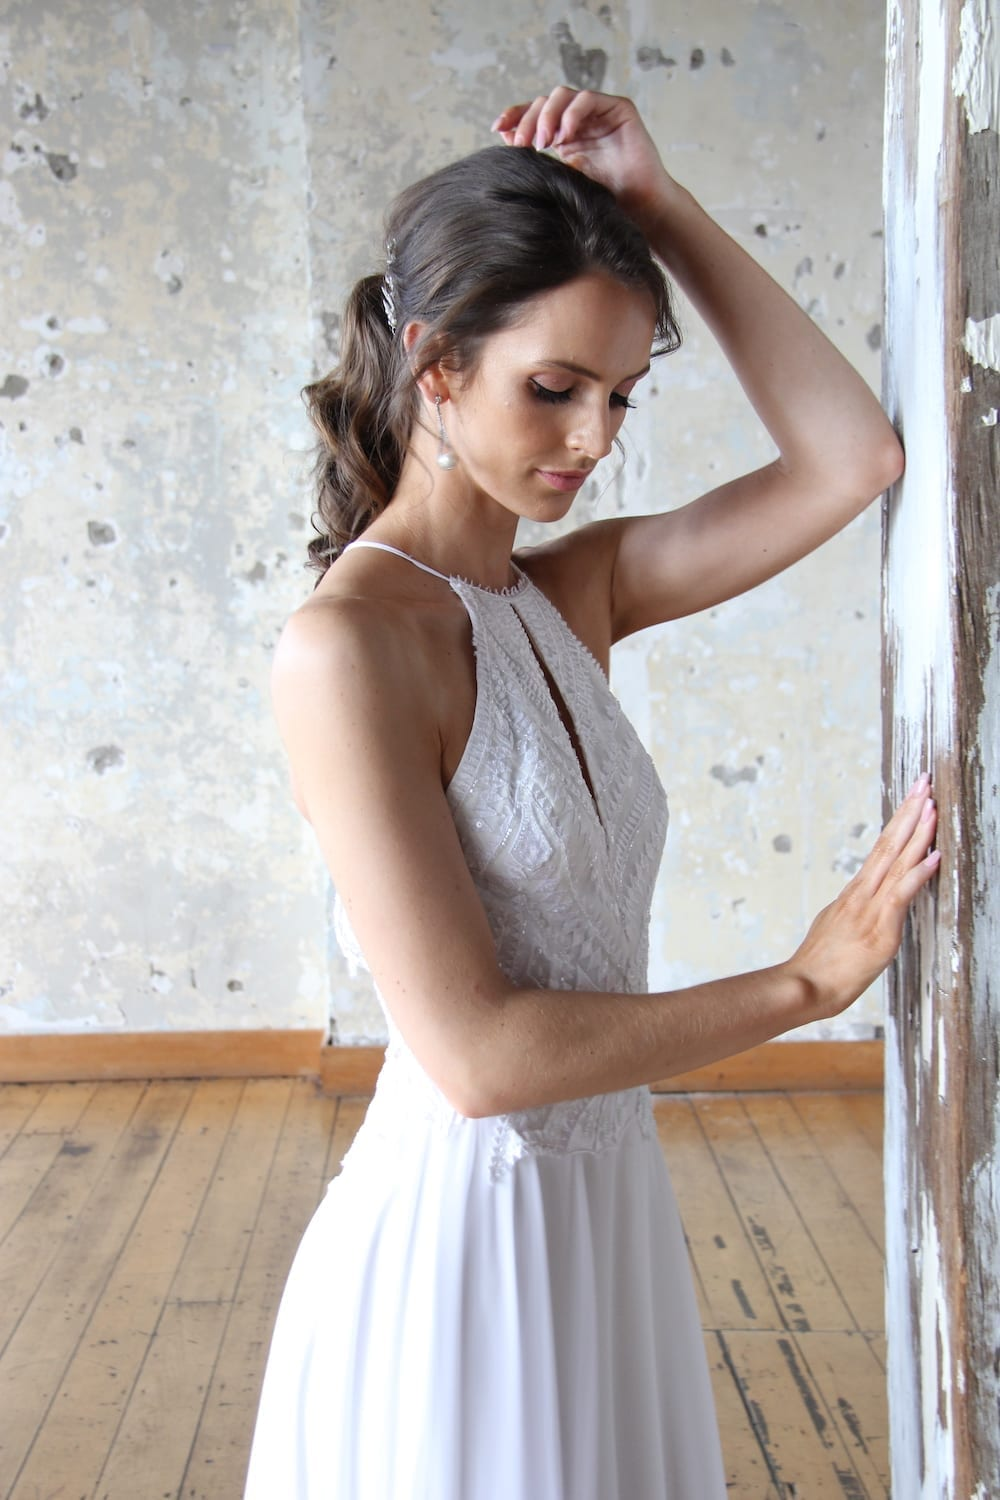 Female model wearing Vinka Design Modern Muse Wedding Dress. In chic warehouse the side detail of a light, halter-necked gown with a fluid chiffon skirt.